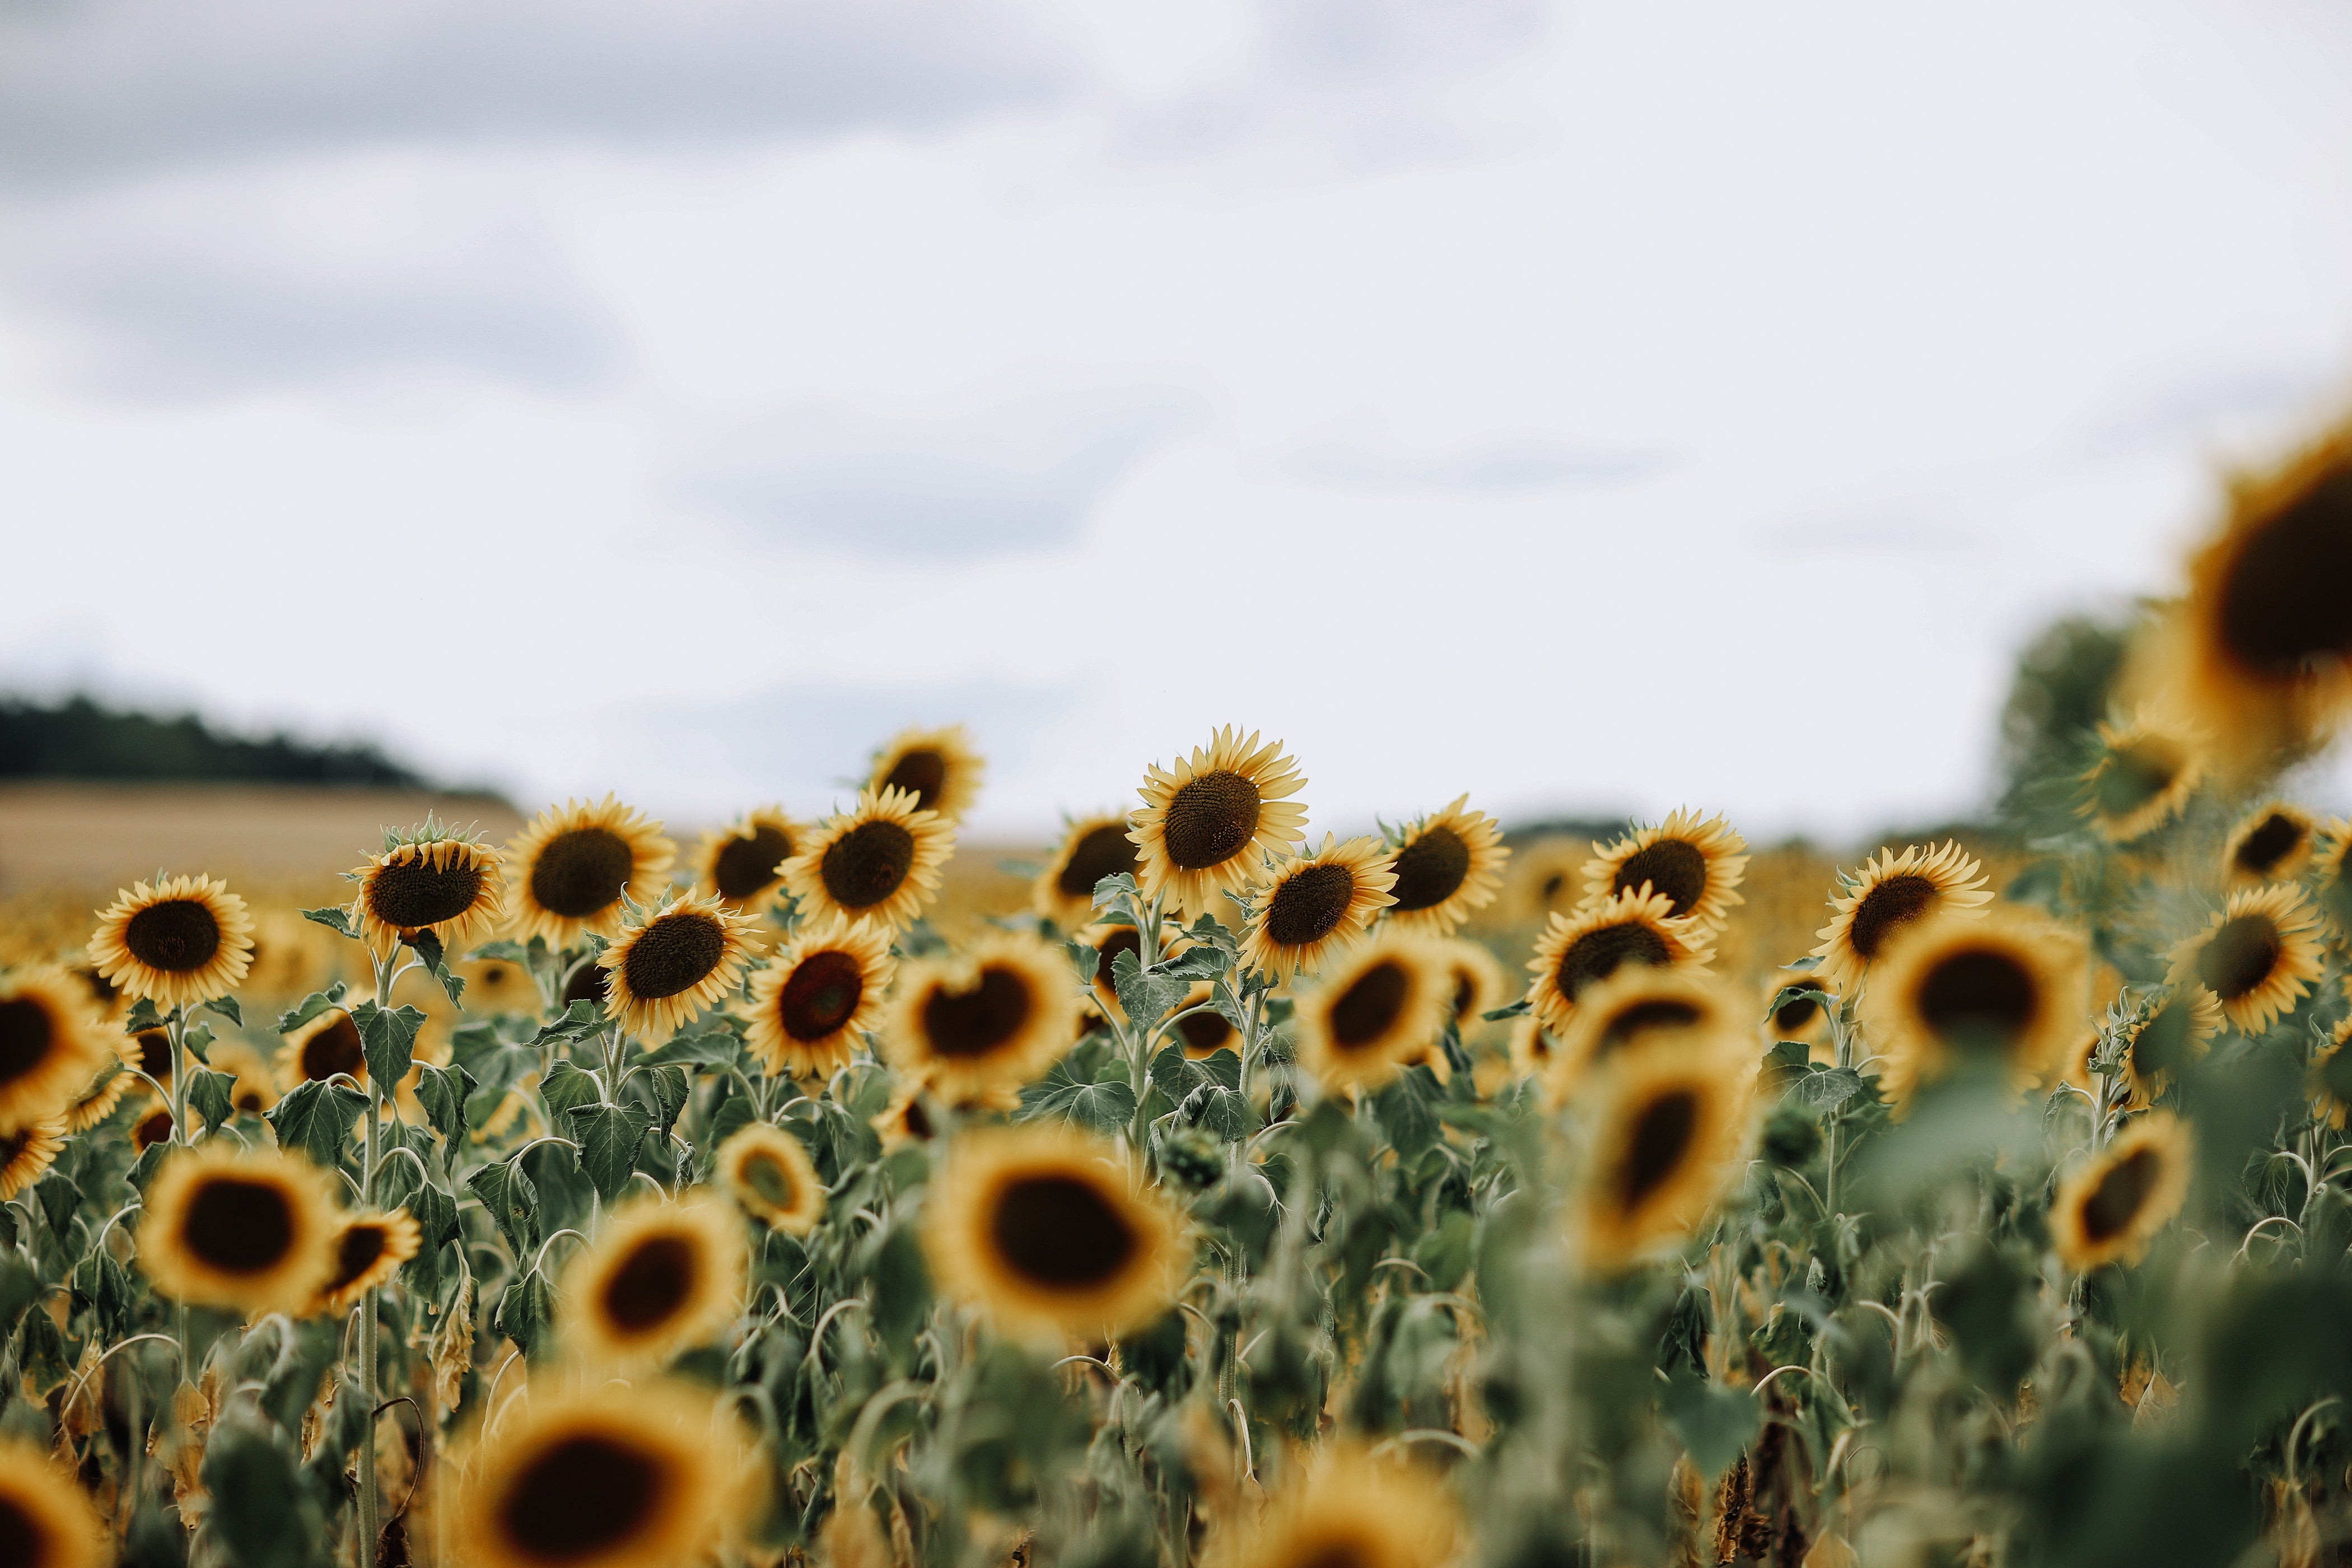 sunflower 4K wallpapers for your